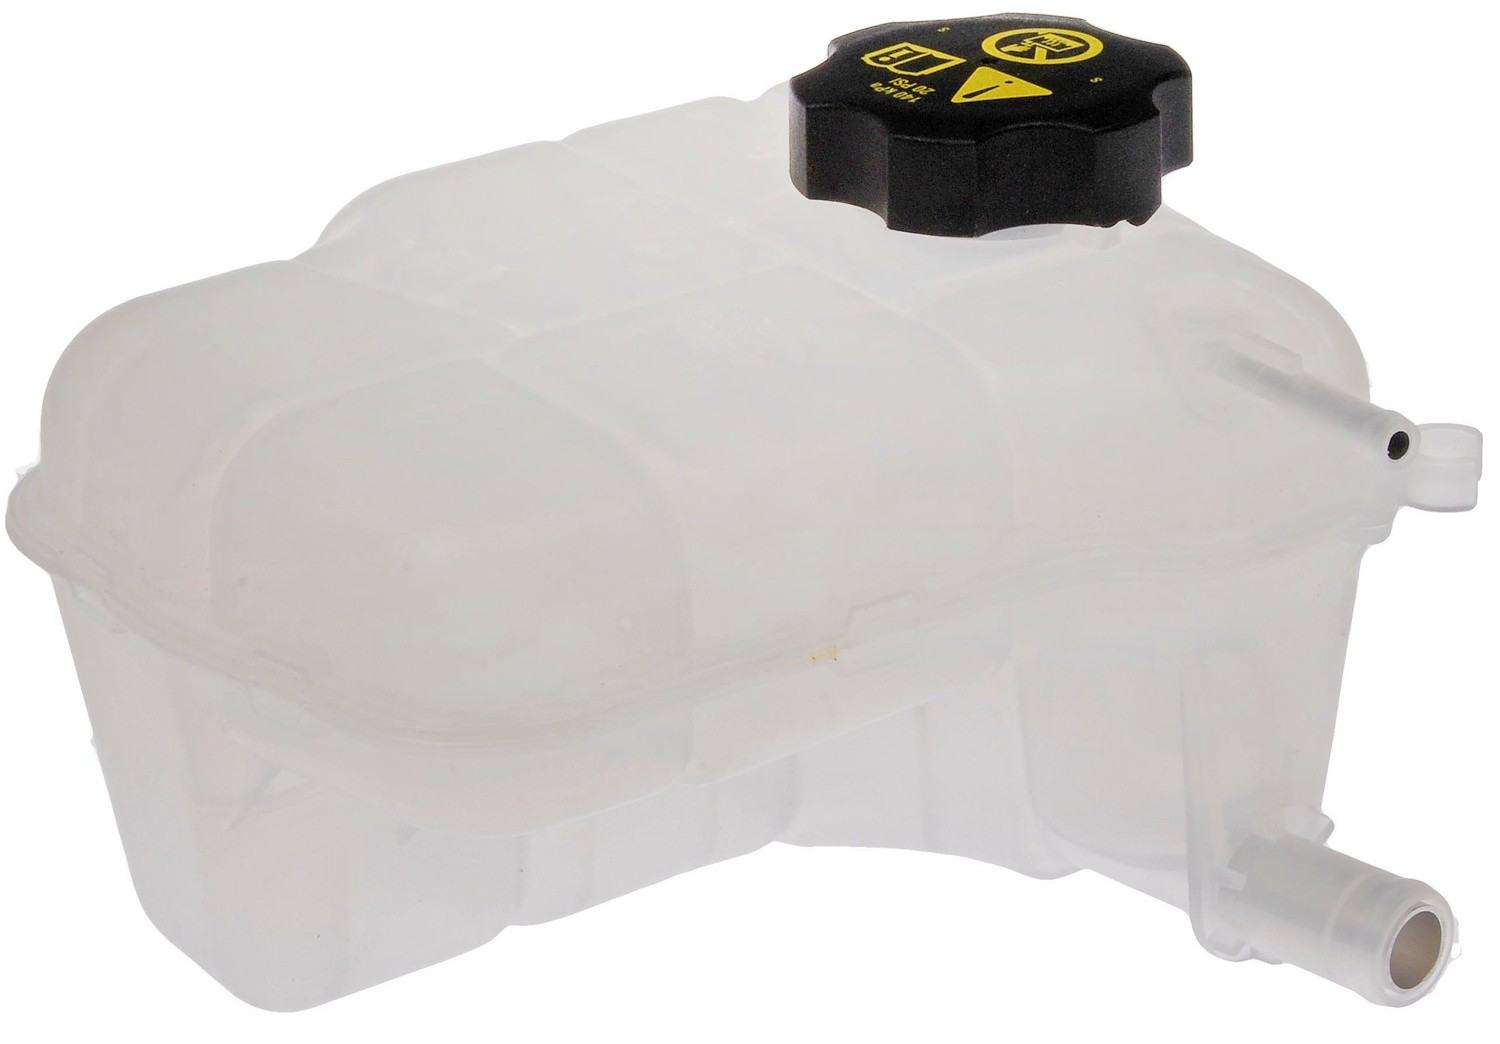 DORMAN OE SOLUTIONS - Engine Coolant Recovery Tank - DRE 603-383